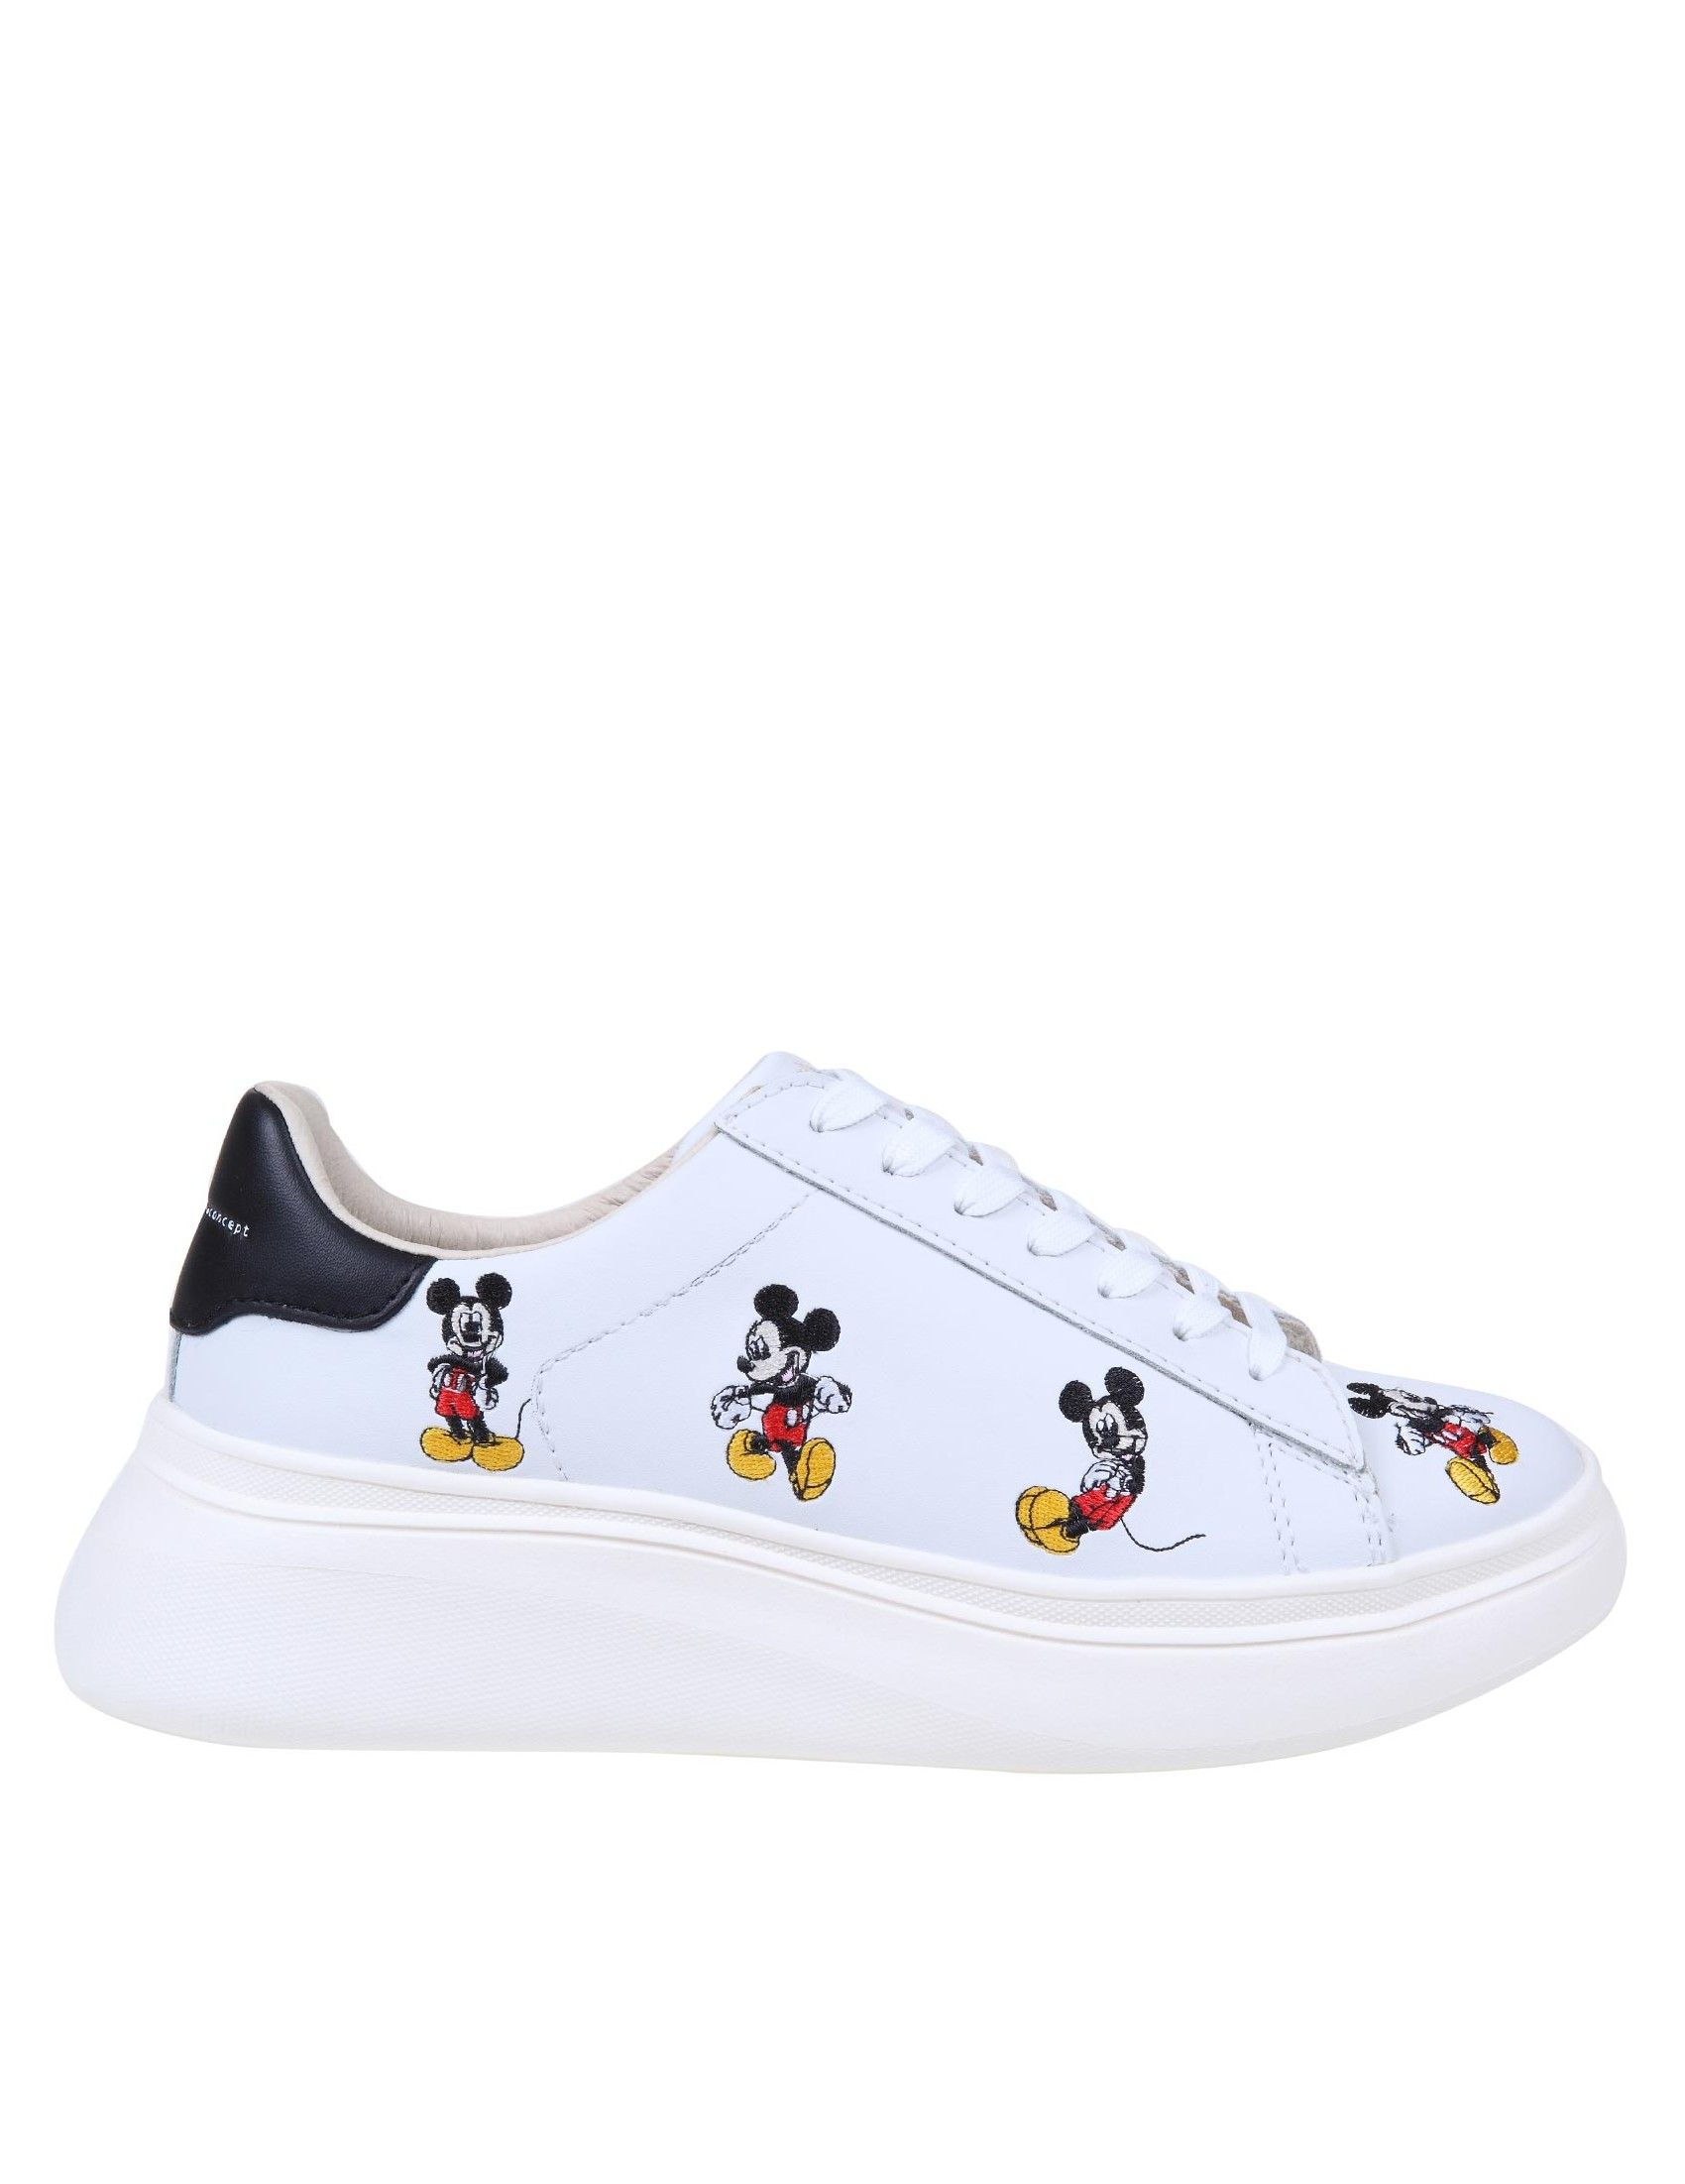 Moa Master Of Arts MOA SNEAKERS IN LEATHER WITH DISNEY EMBROIDERY